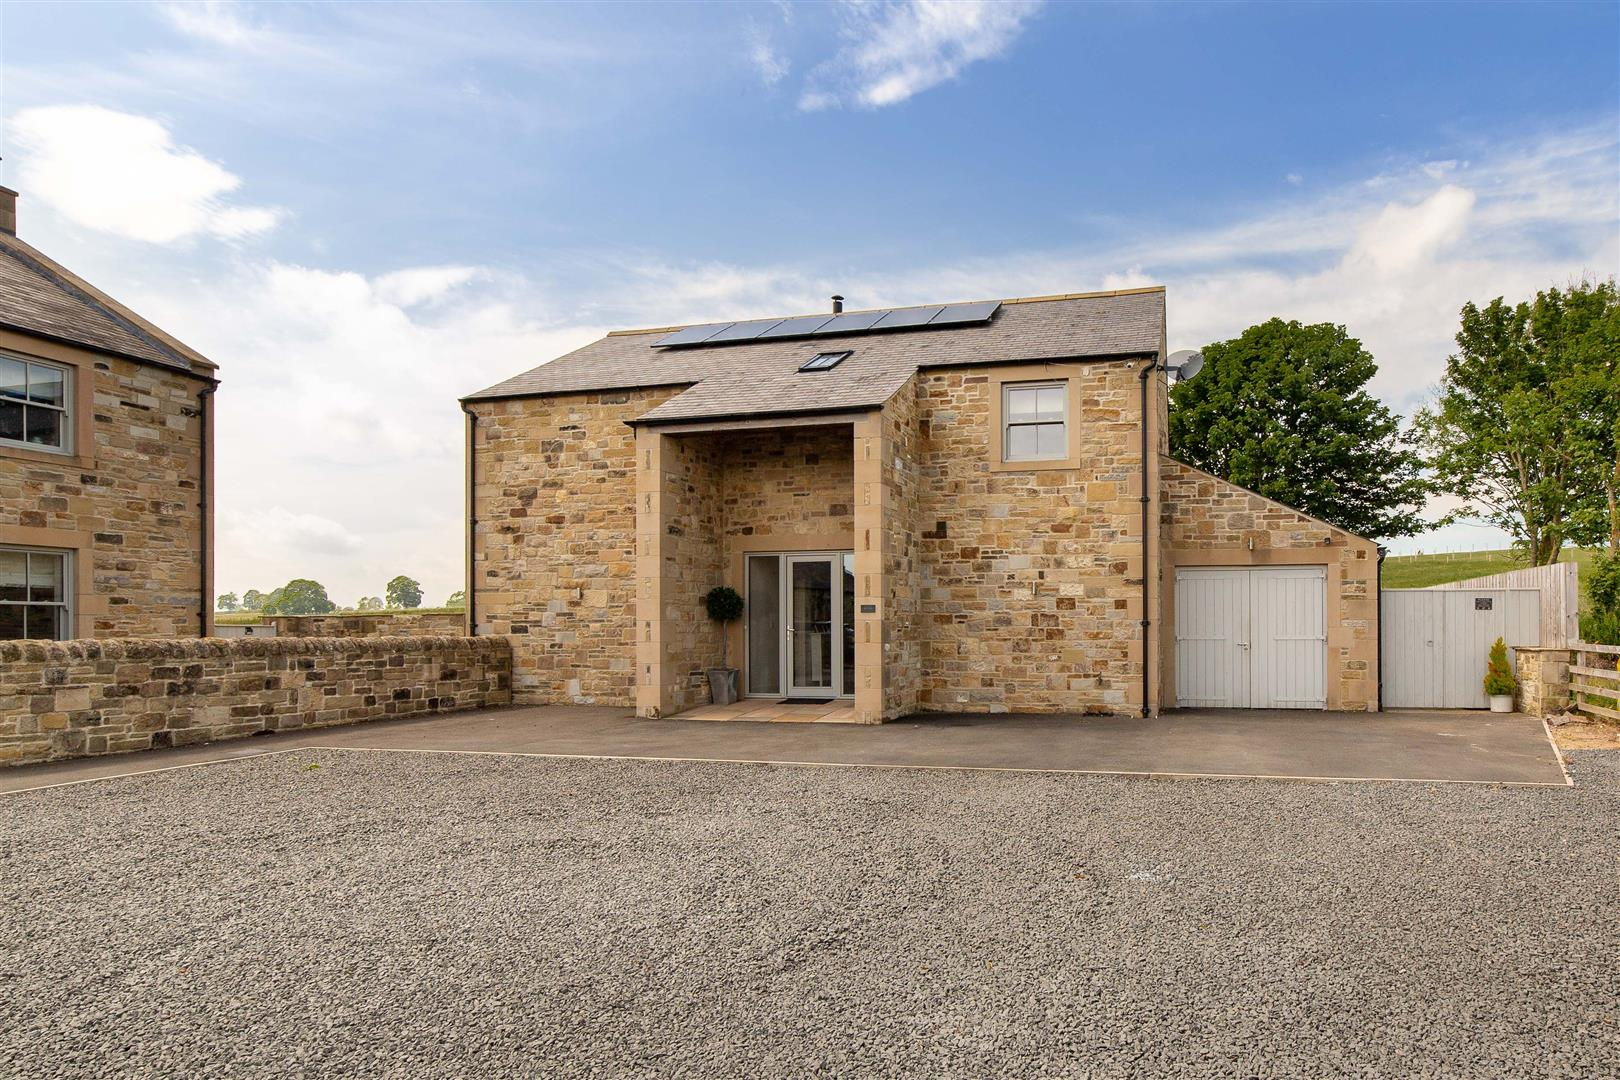 4 bed detached house for sale, Hexham  - Property Image 3